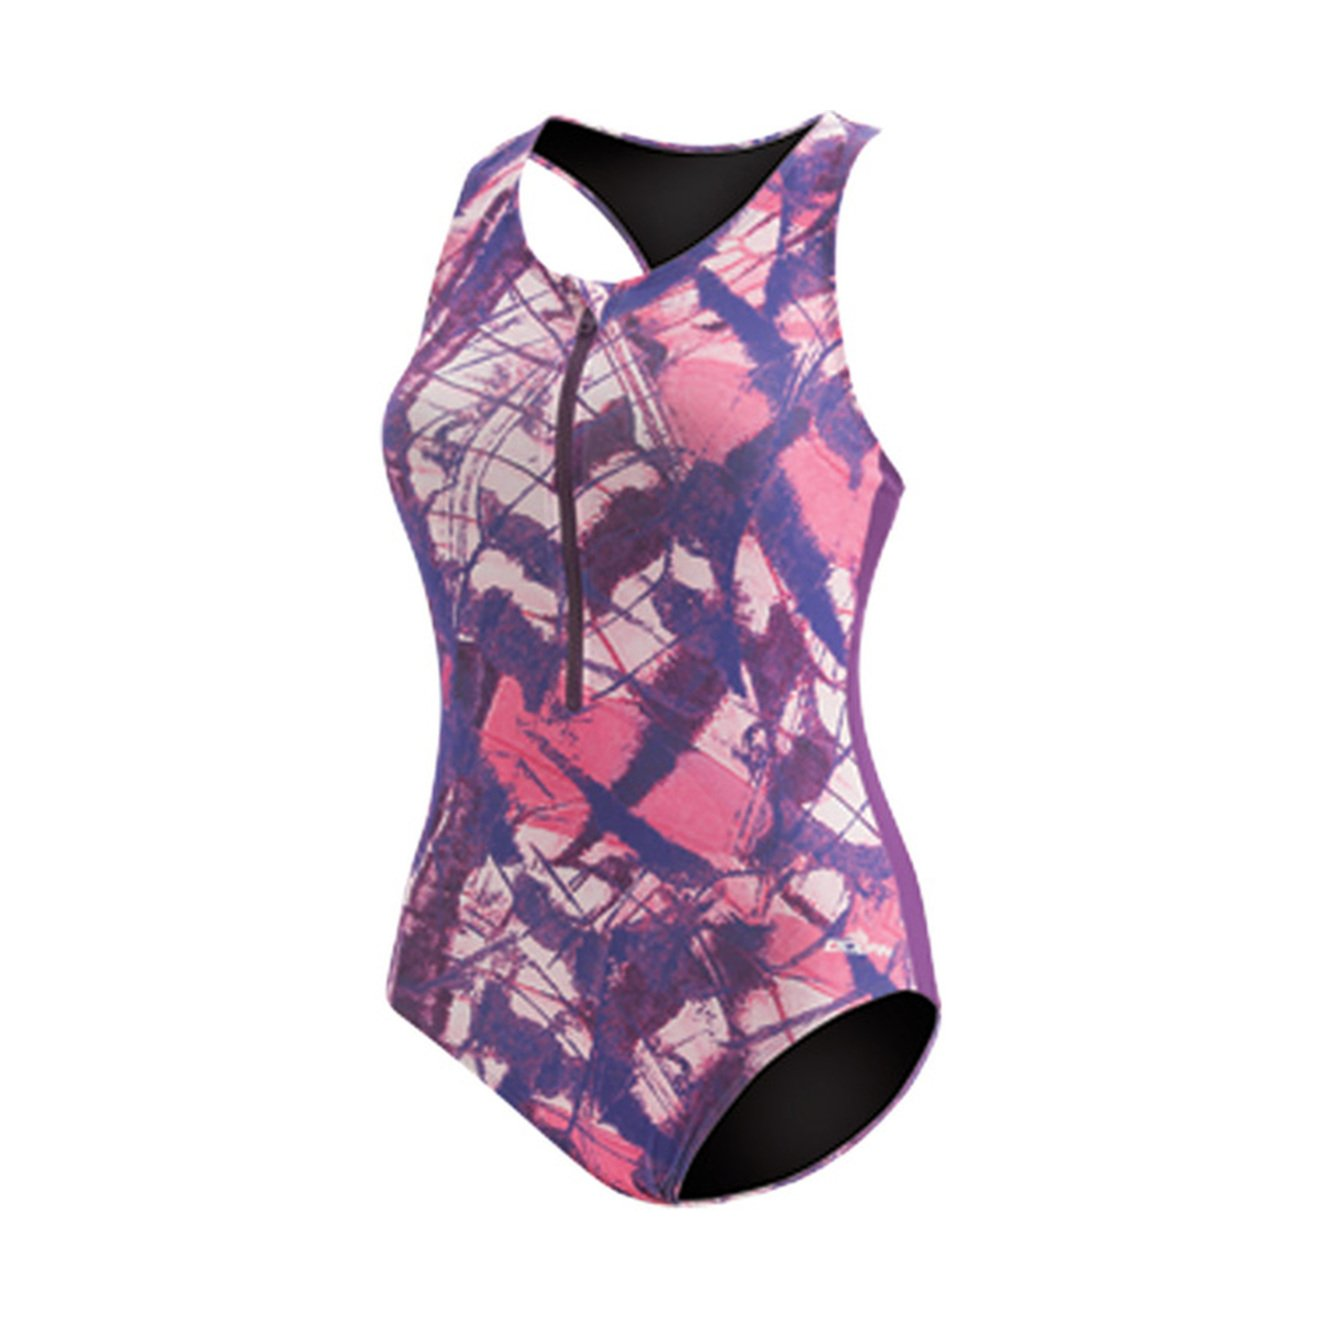 5828a63b156 Amazon.com: Dolfin Women's AQUASHAPE Zip-Front ONE-Piece Swimsuit: Clothing